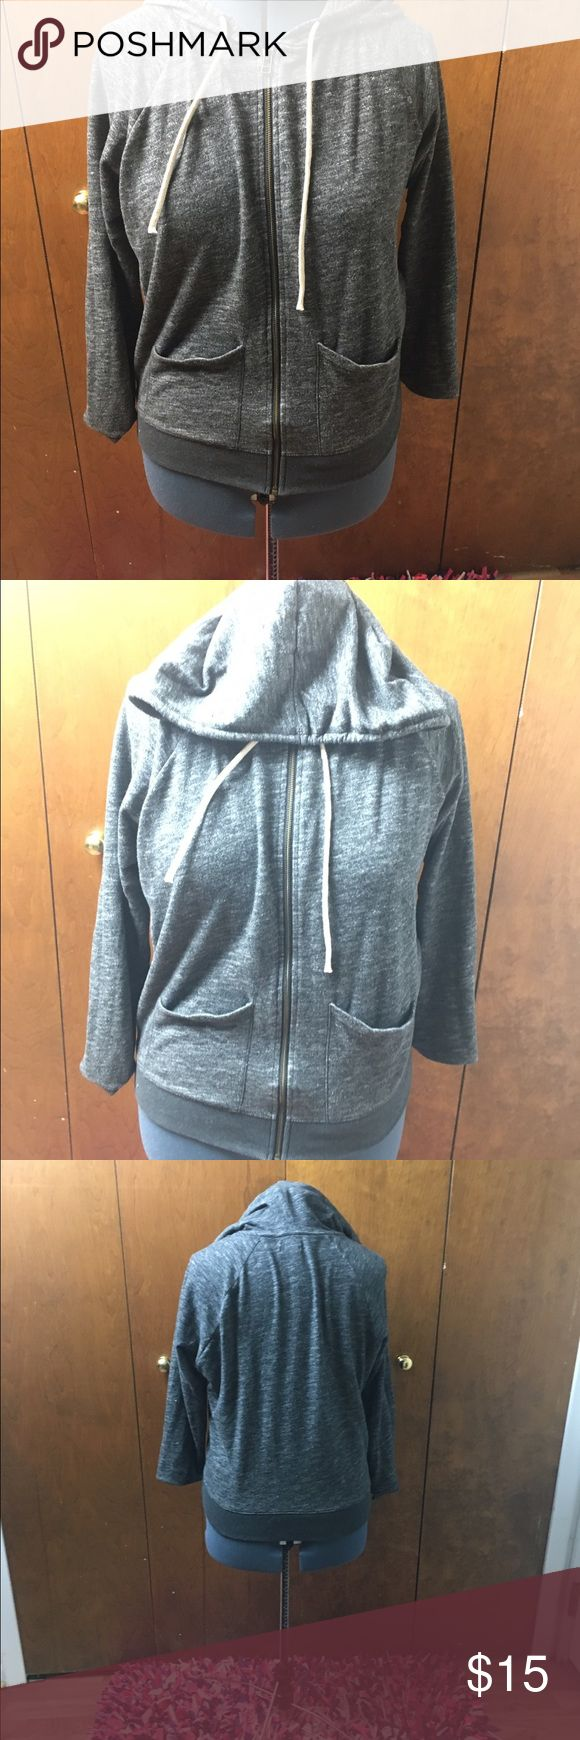 Gray Old Navy Hoodie Size Large Gray Old Navy Hoodie Size Large Tops Sweatshirts & Hoodies